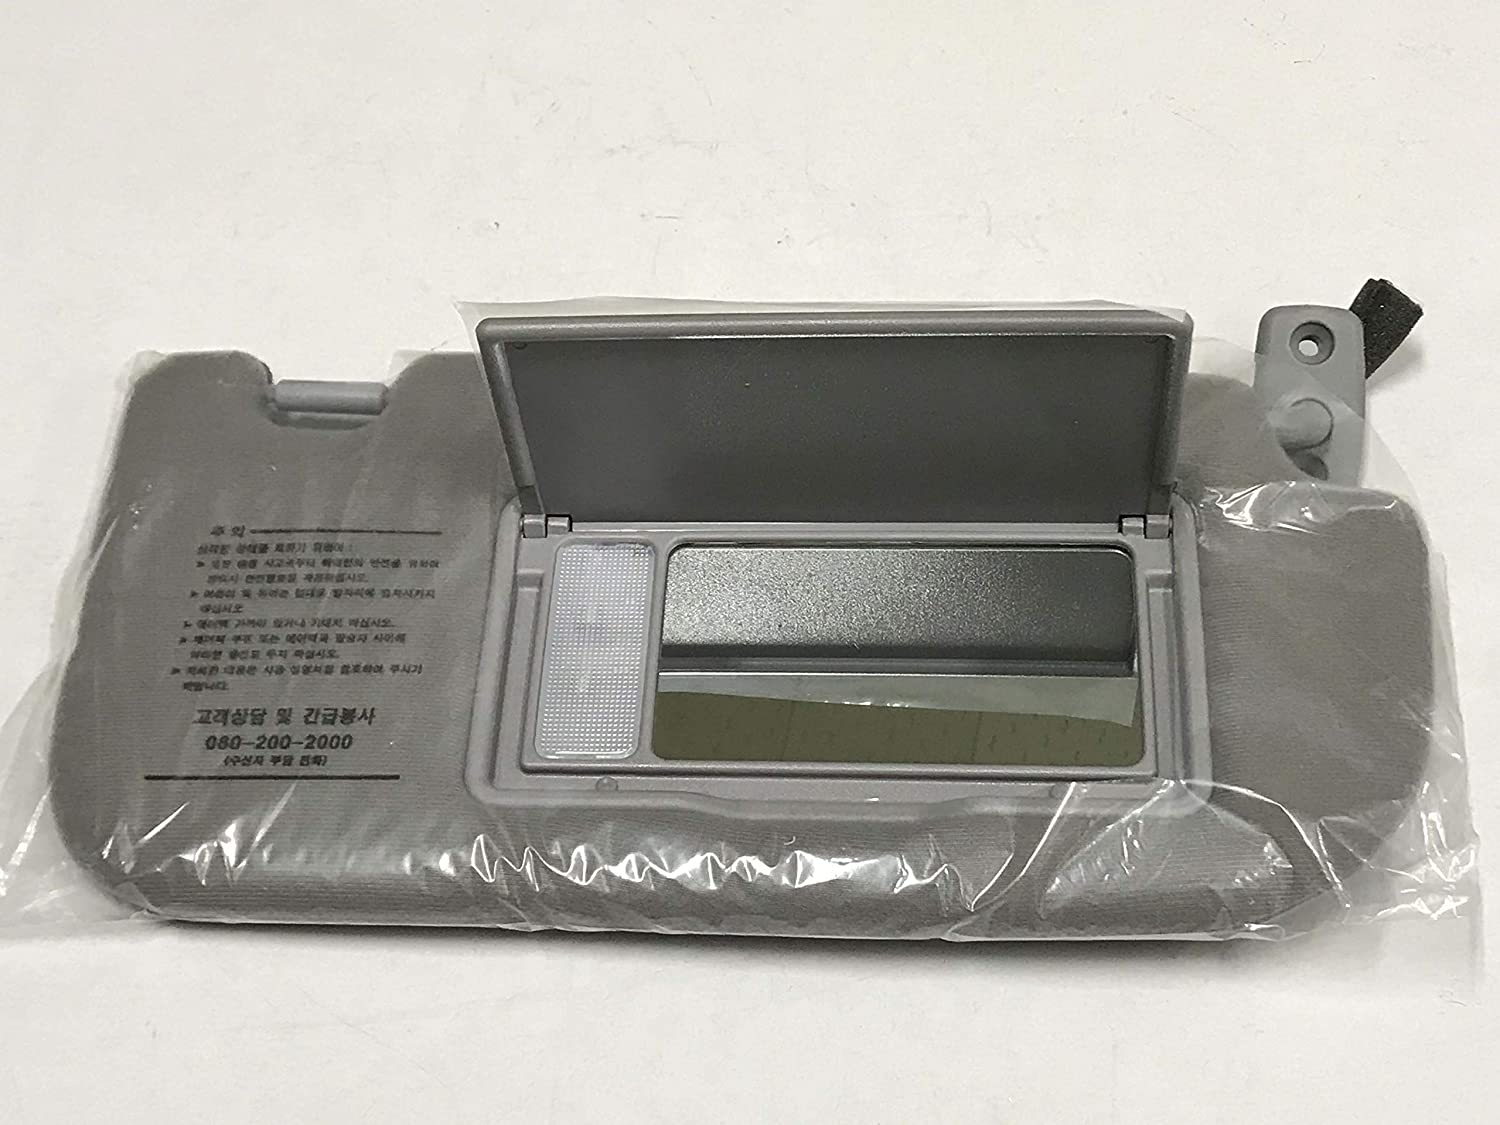 gray Kia Motors Genuine 852011F210LX Right Inside Sun Visor Assembly Gray 1-pc Set For 2005 2006 2007 2008 2009 2010 Kia Sportage 85201-1F210LX